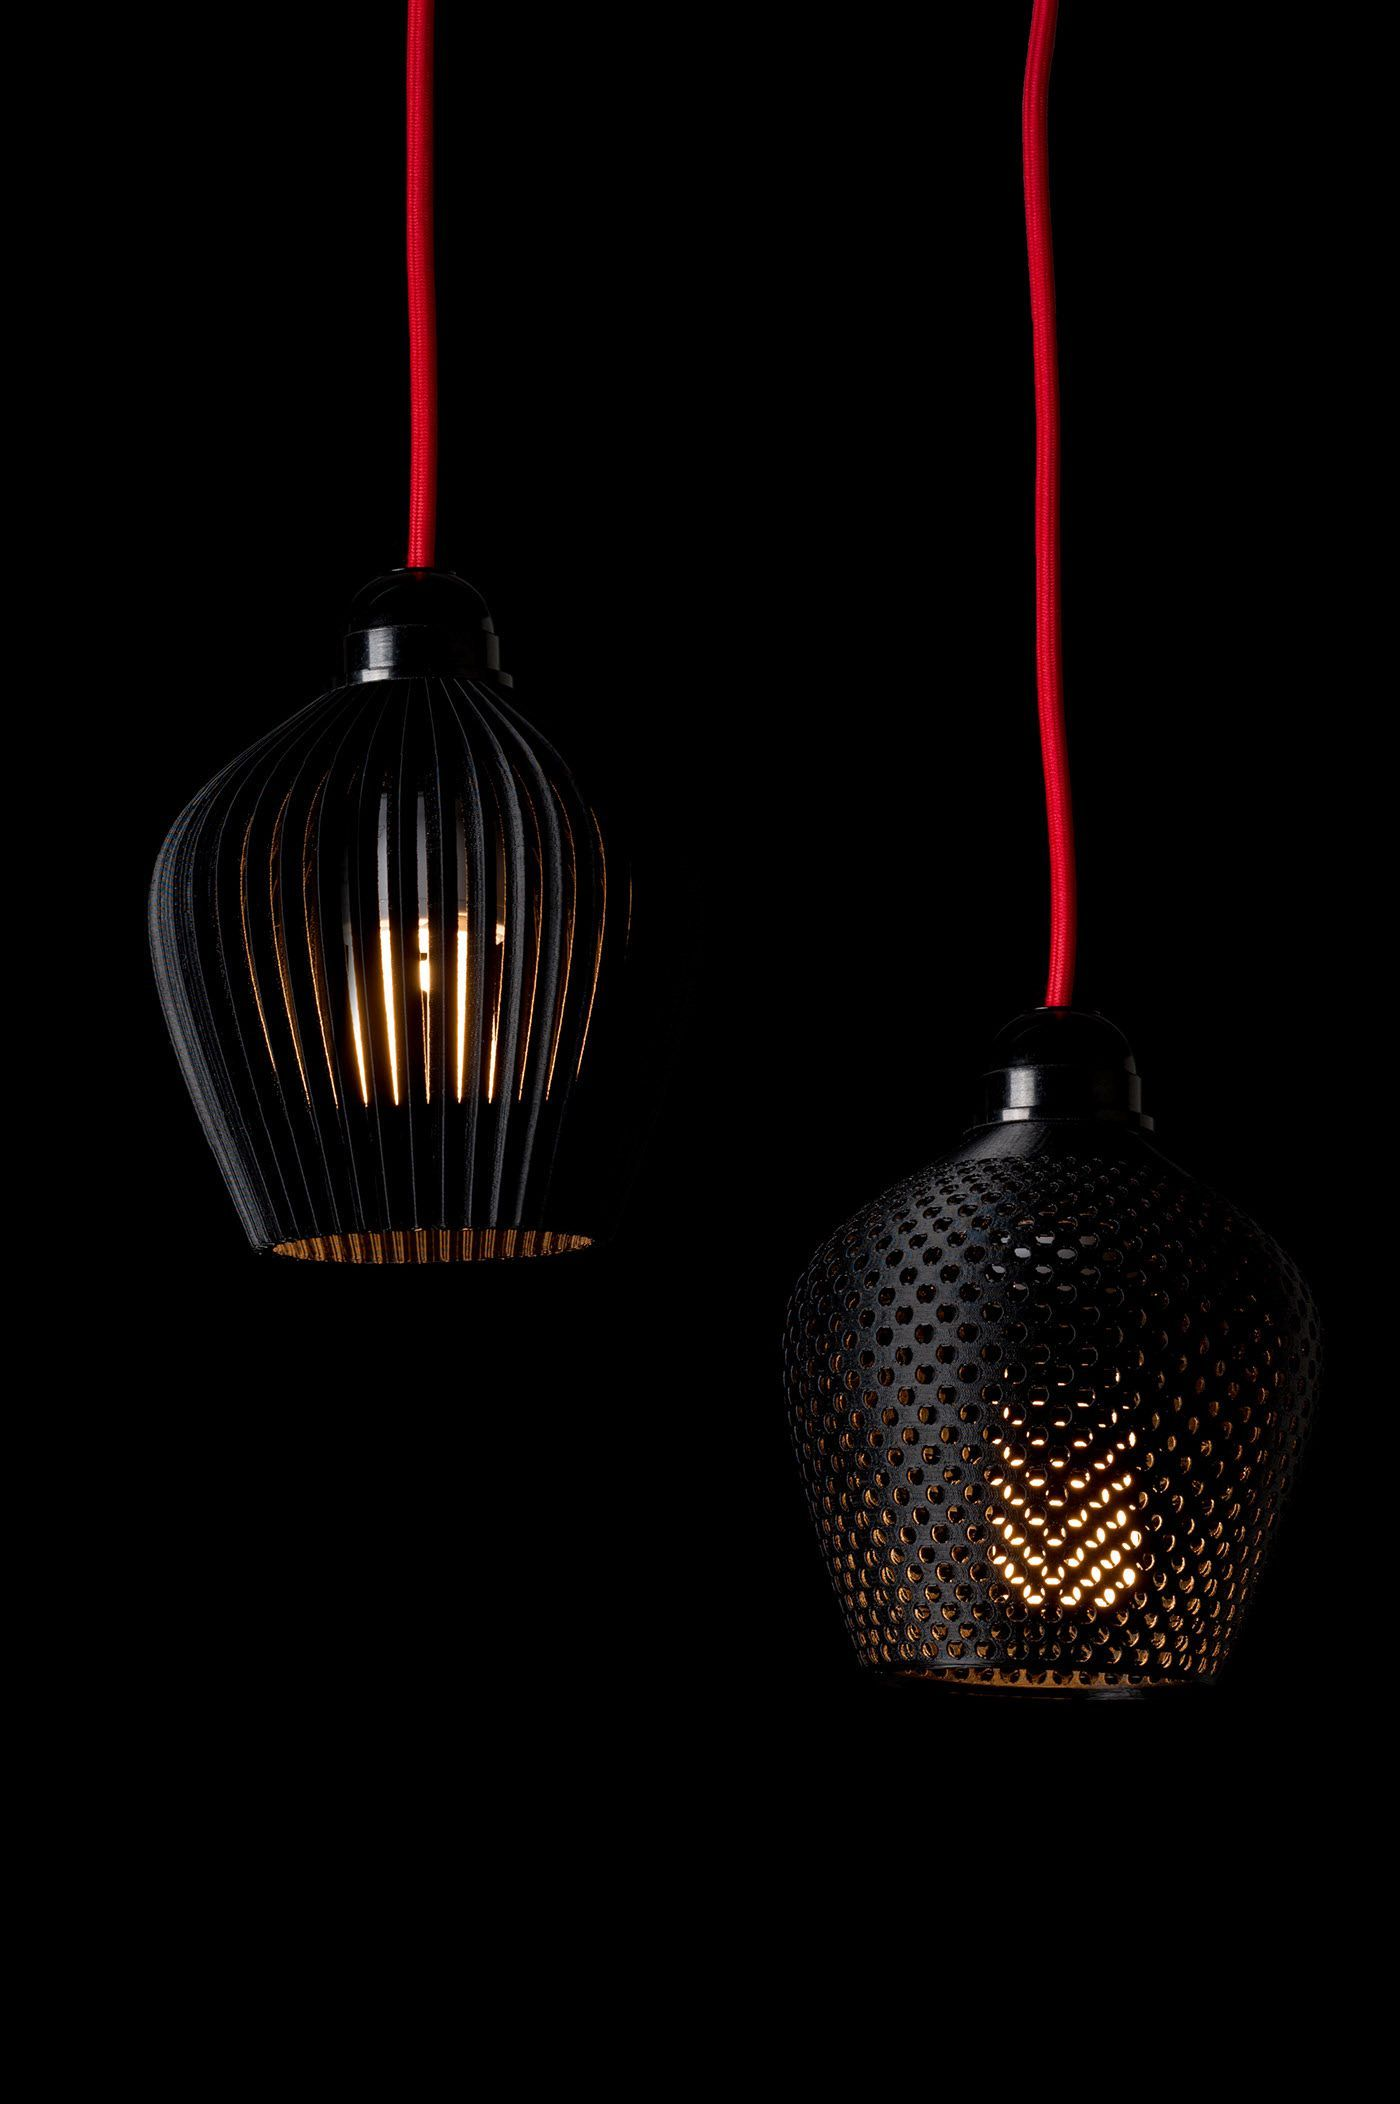 3d Printed Lamp Shade Collection On Behance Woodworking3ddesign 3d Printed Objects 3d Printing Diy 3d Printing Machine